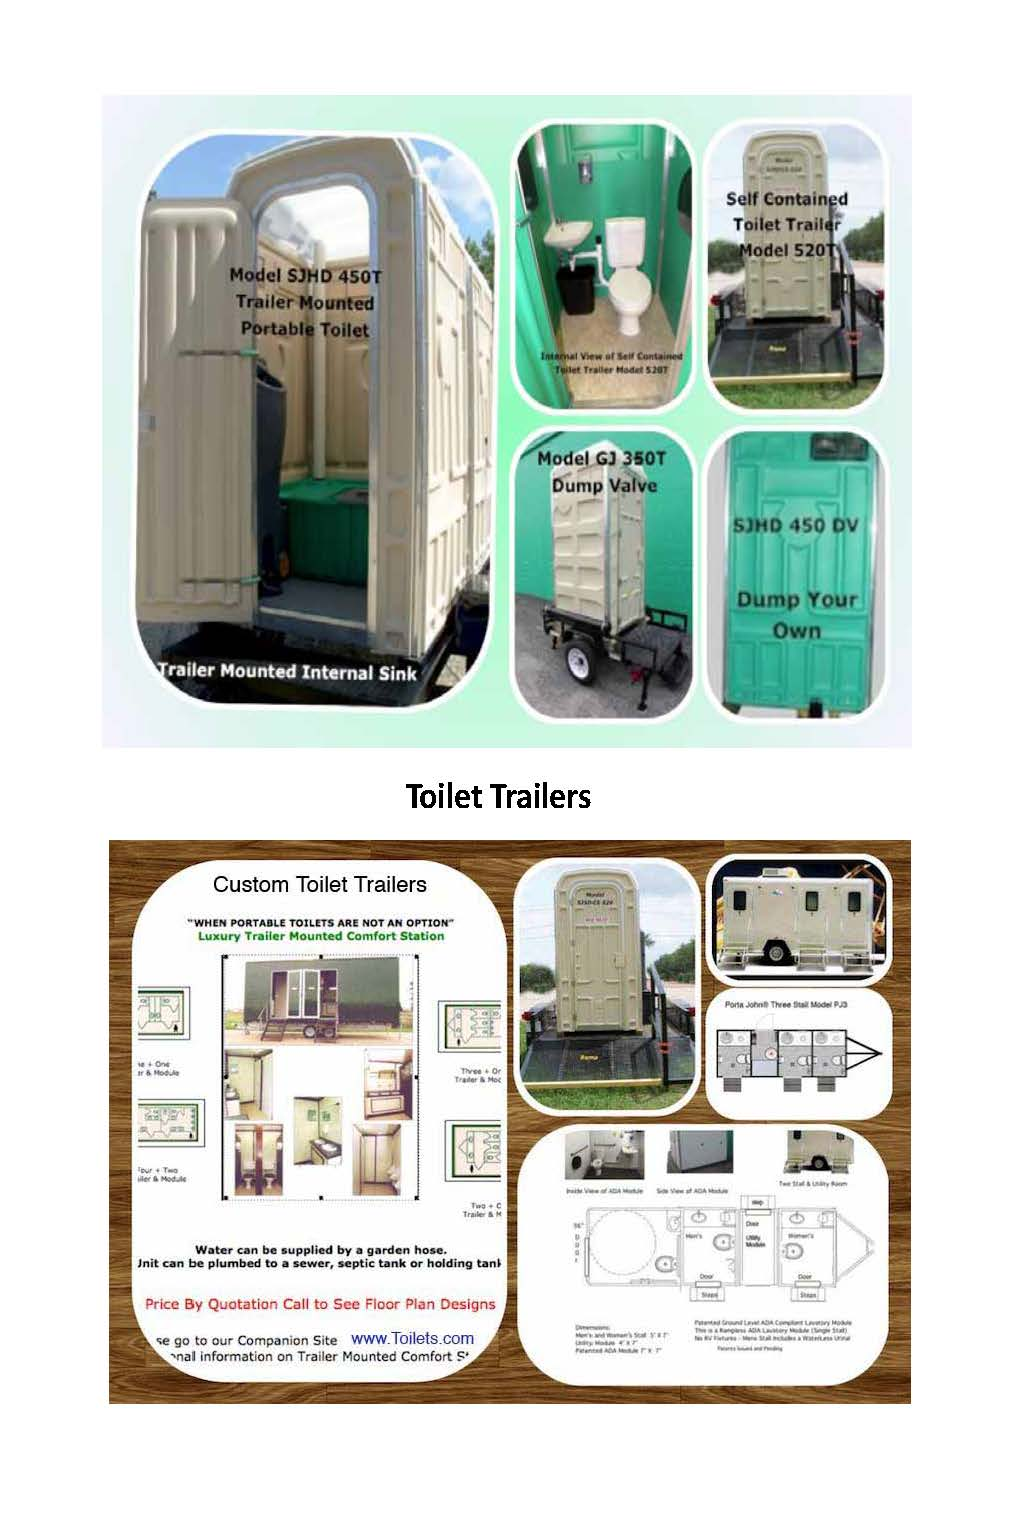 Portable Toilet Trailers